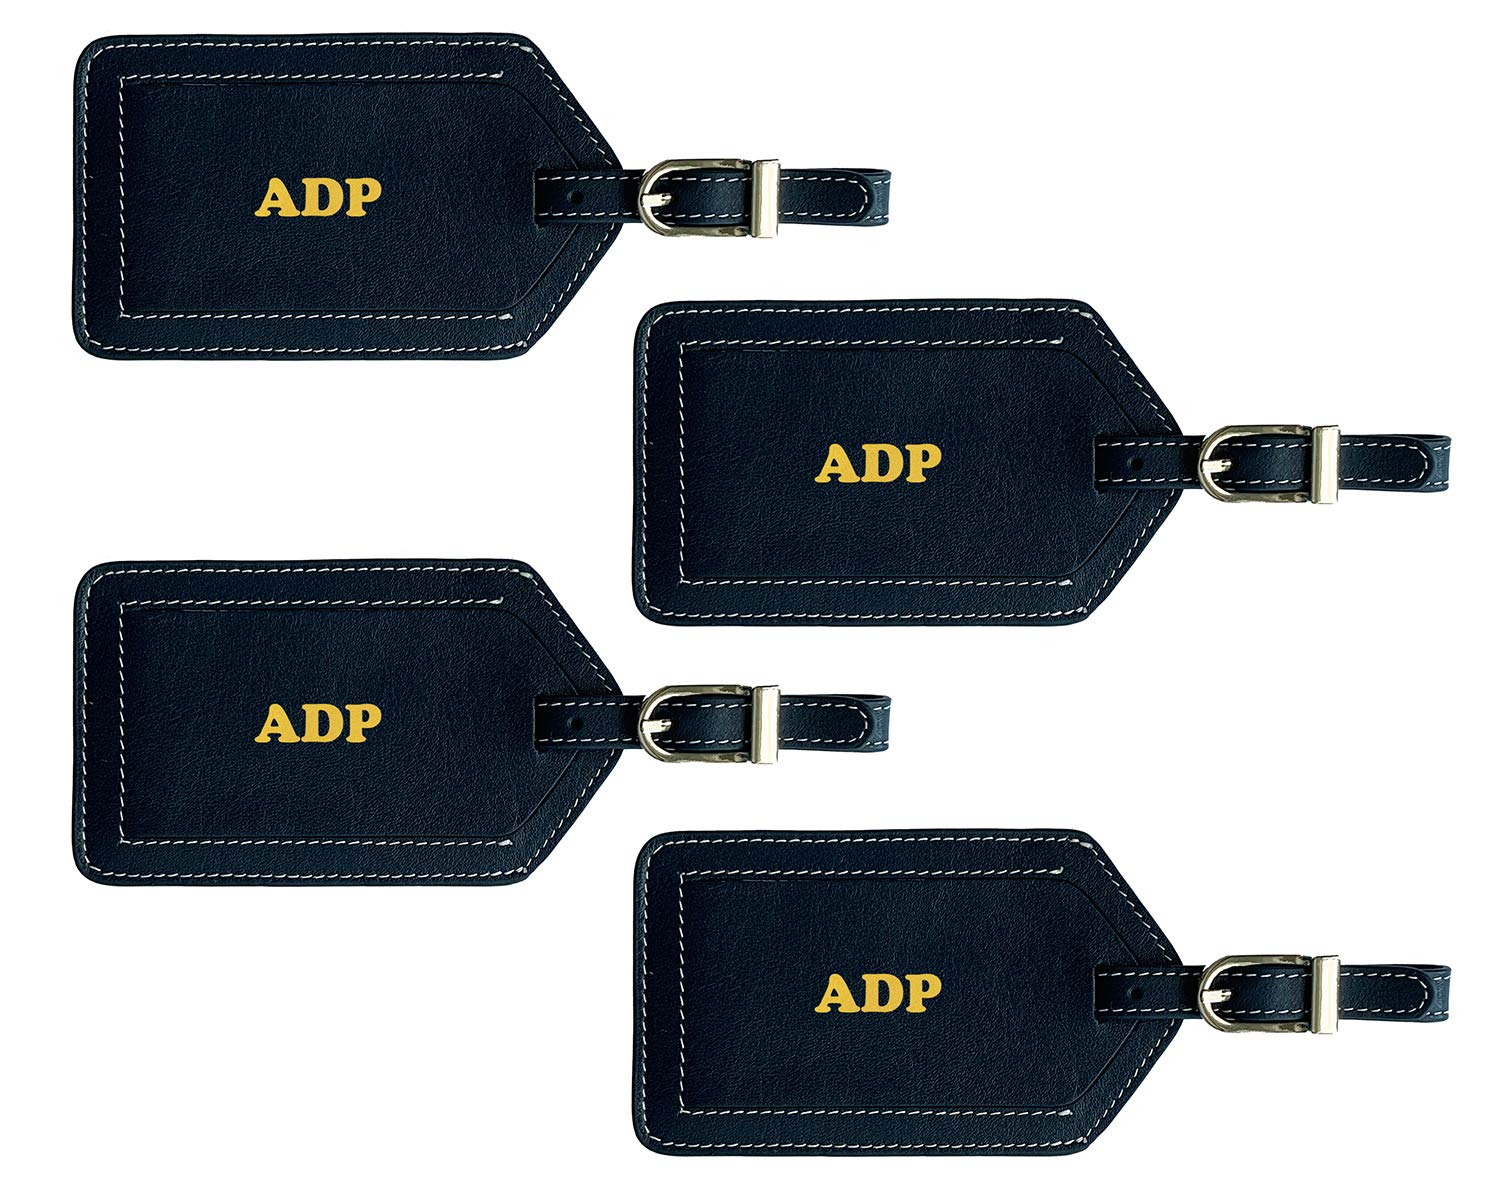 Personalized Monogrammed Navy Leather Luggage Tags - 4 Pack